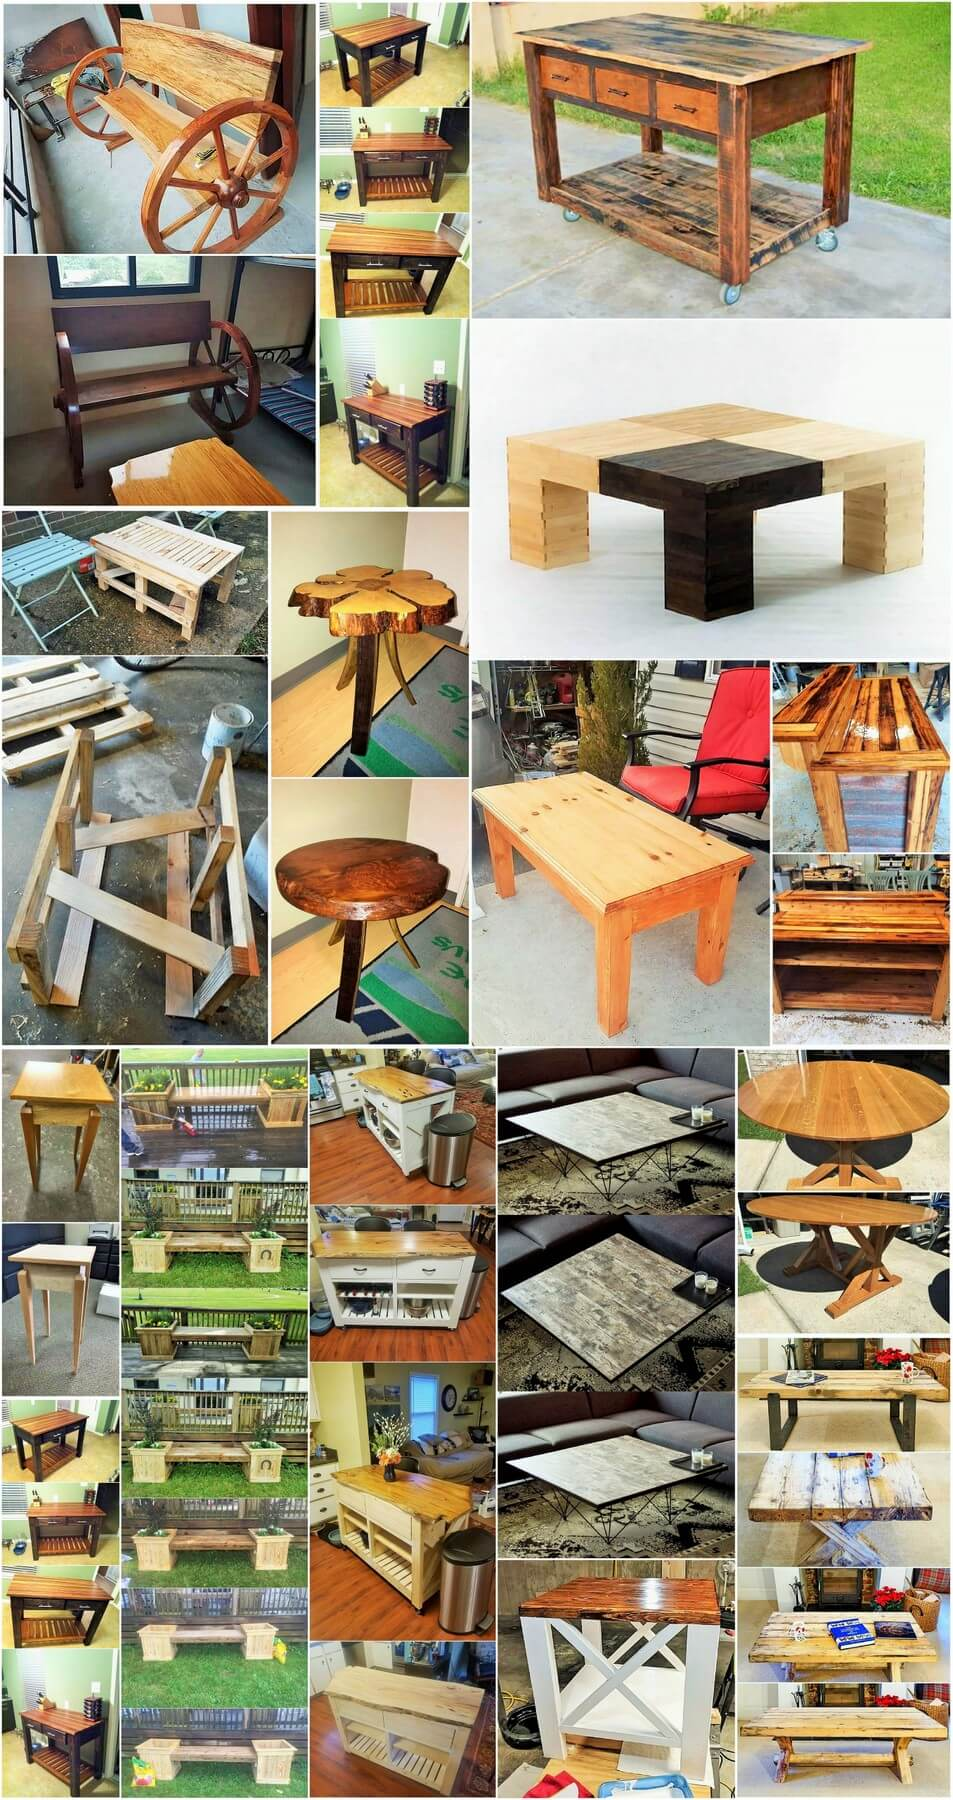 Wooden Banach projects